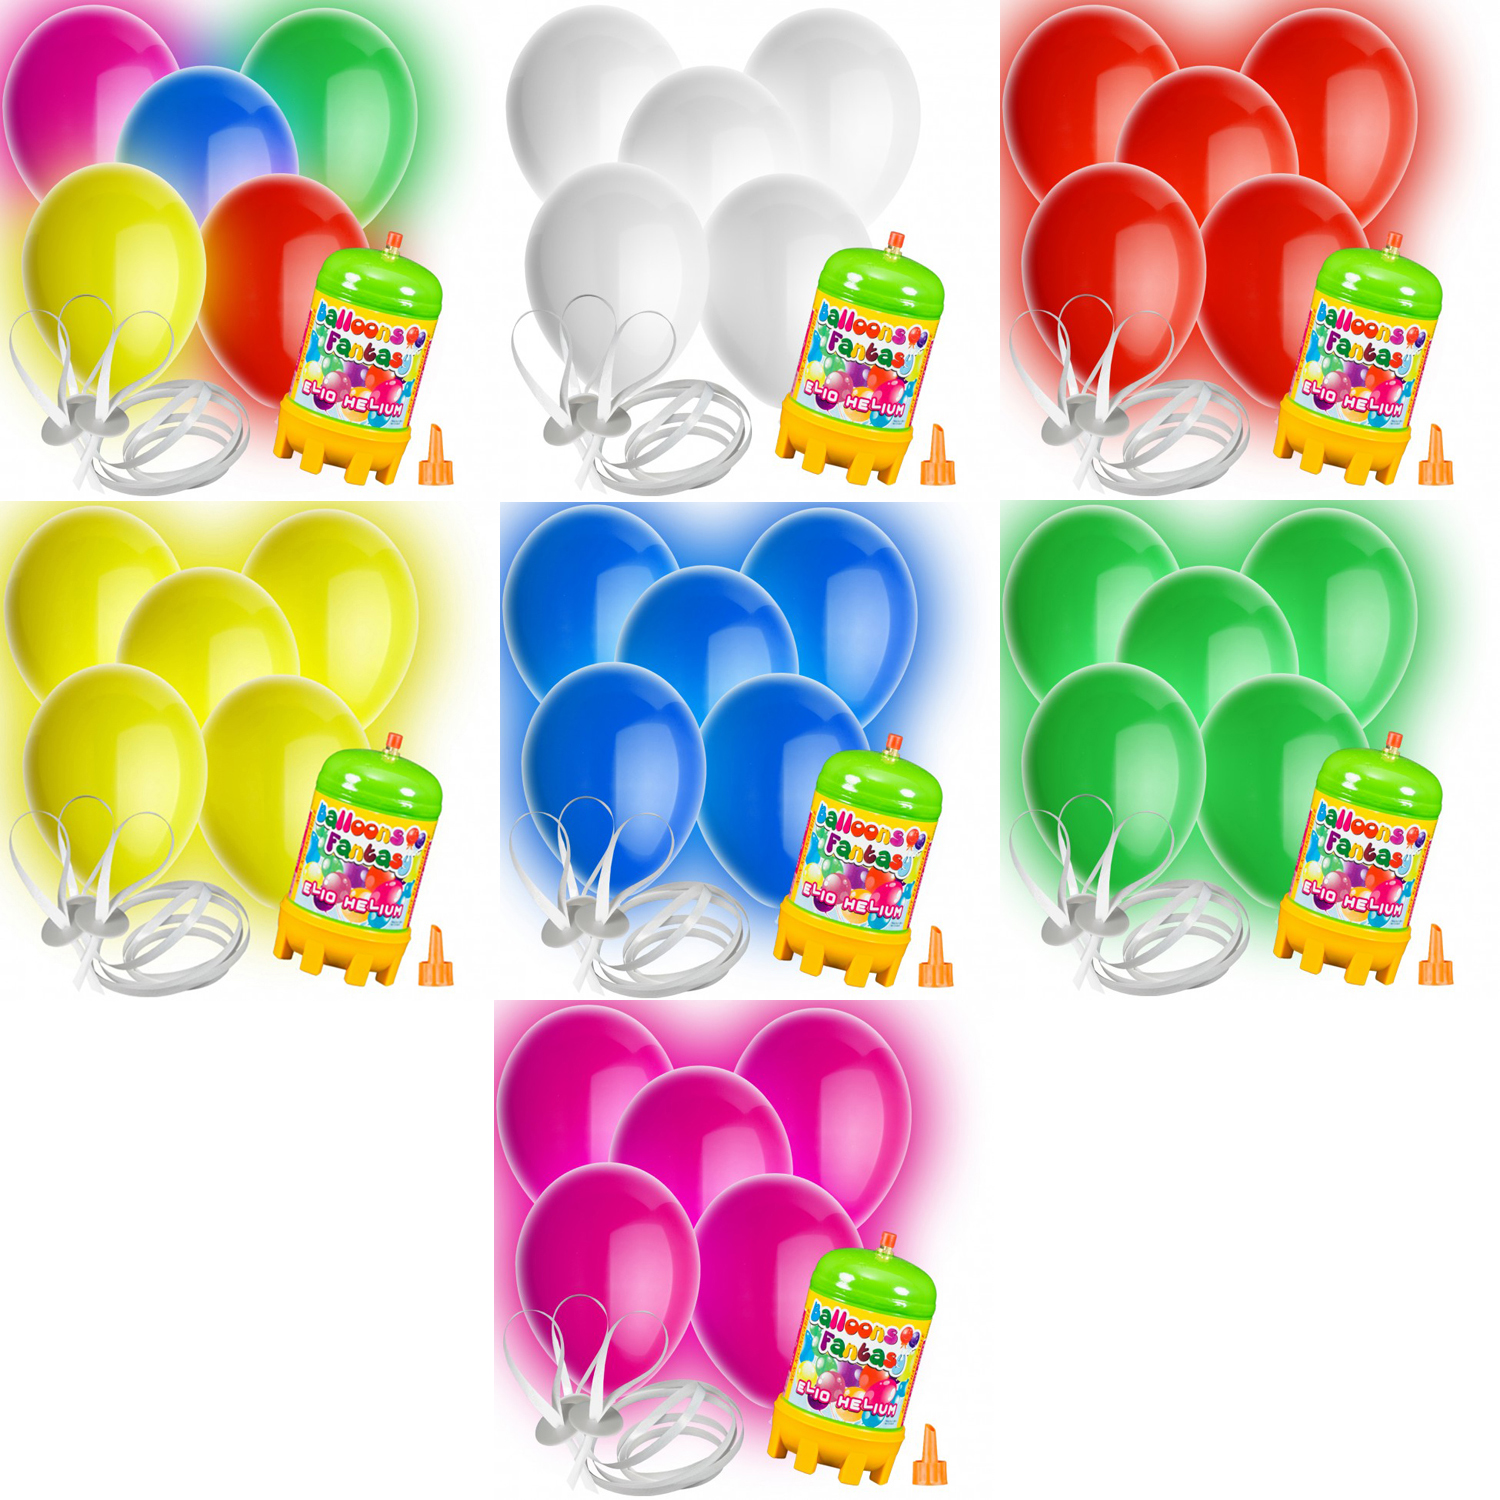 10 luftballons led mit helium ballon gas hochzeit geburtstag komplettset ebay. Black Bedroom Furniture Sets. Home Design Ideas